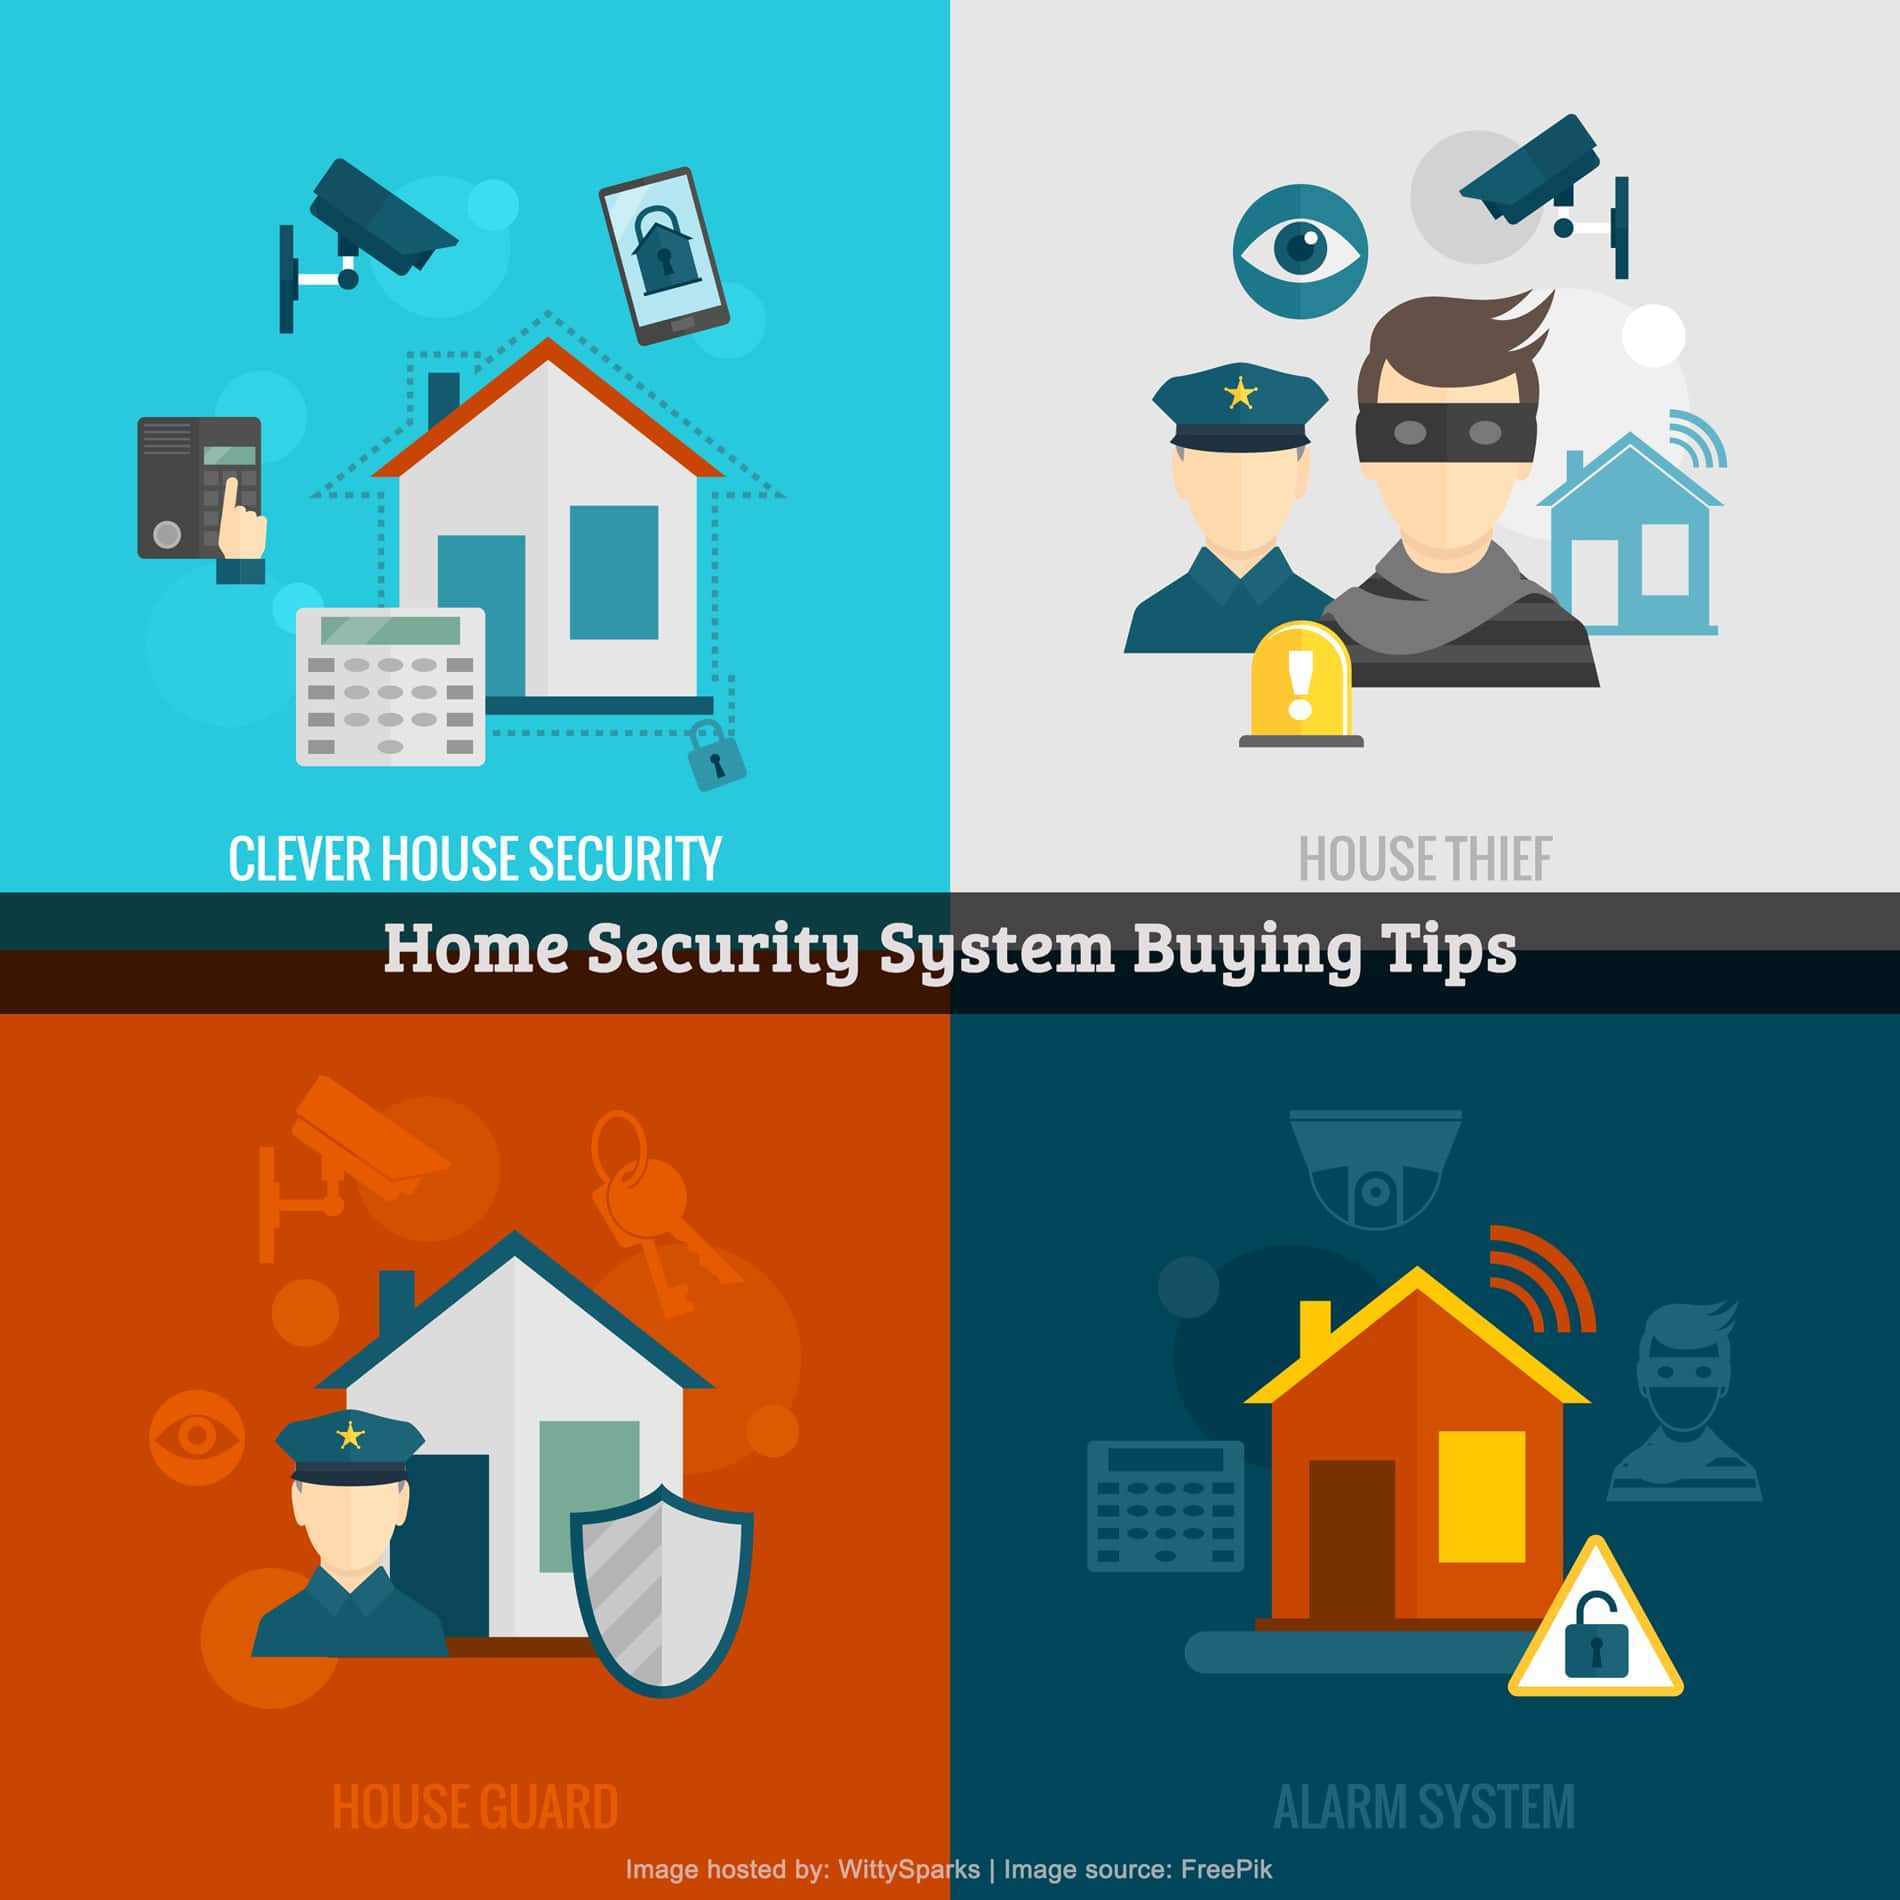 Home Security System Buying Tips